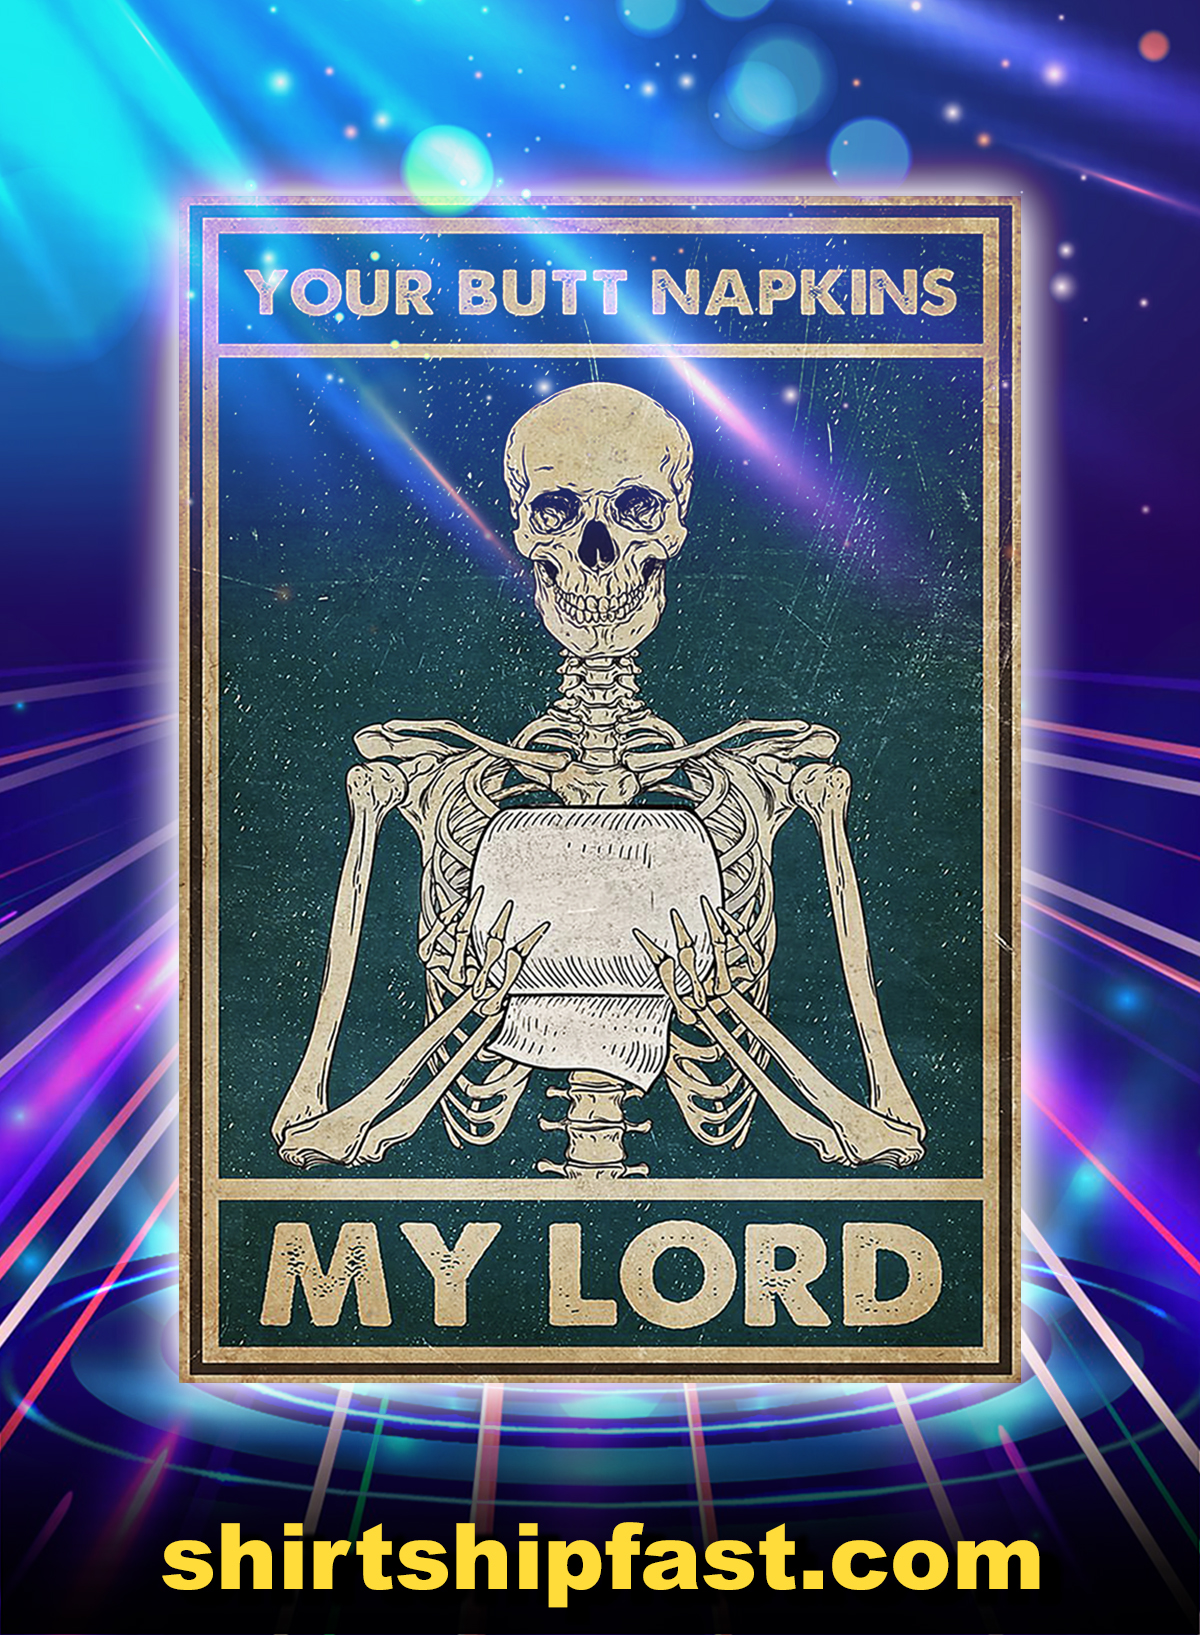 Bathroom skeleton your butt napkins my lord poster - A1